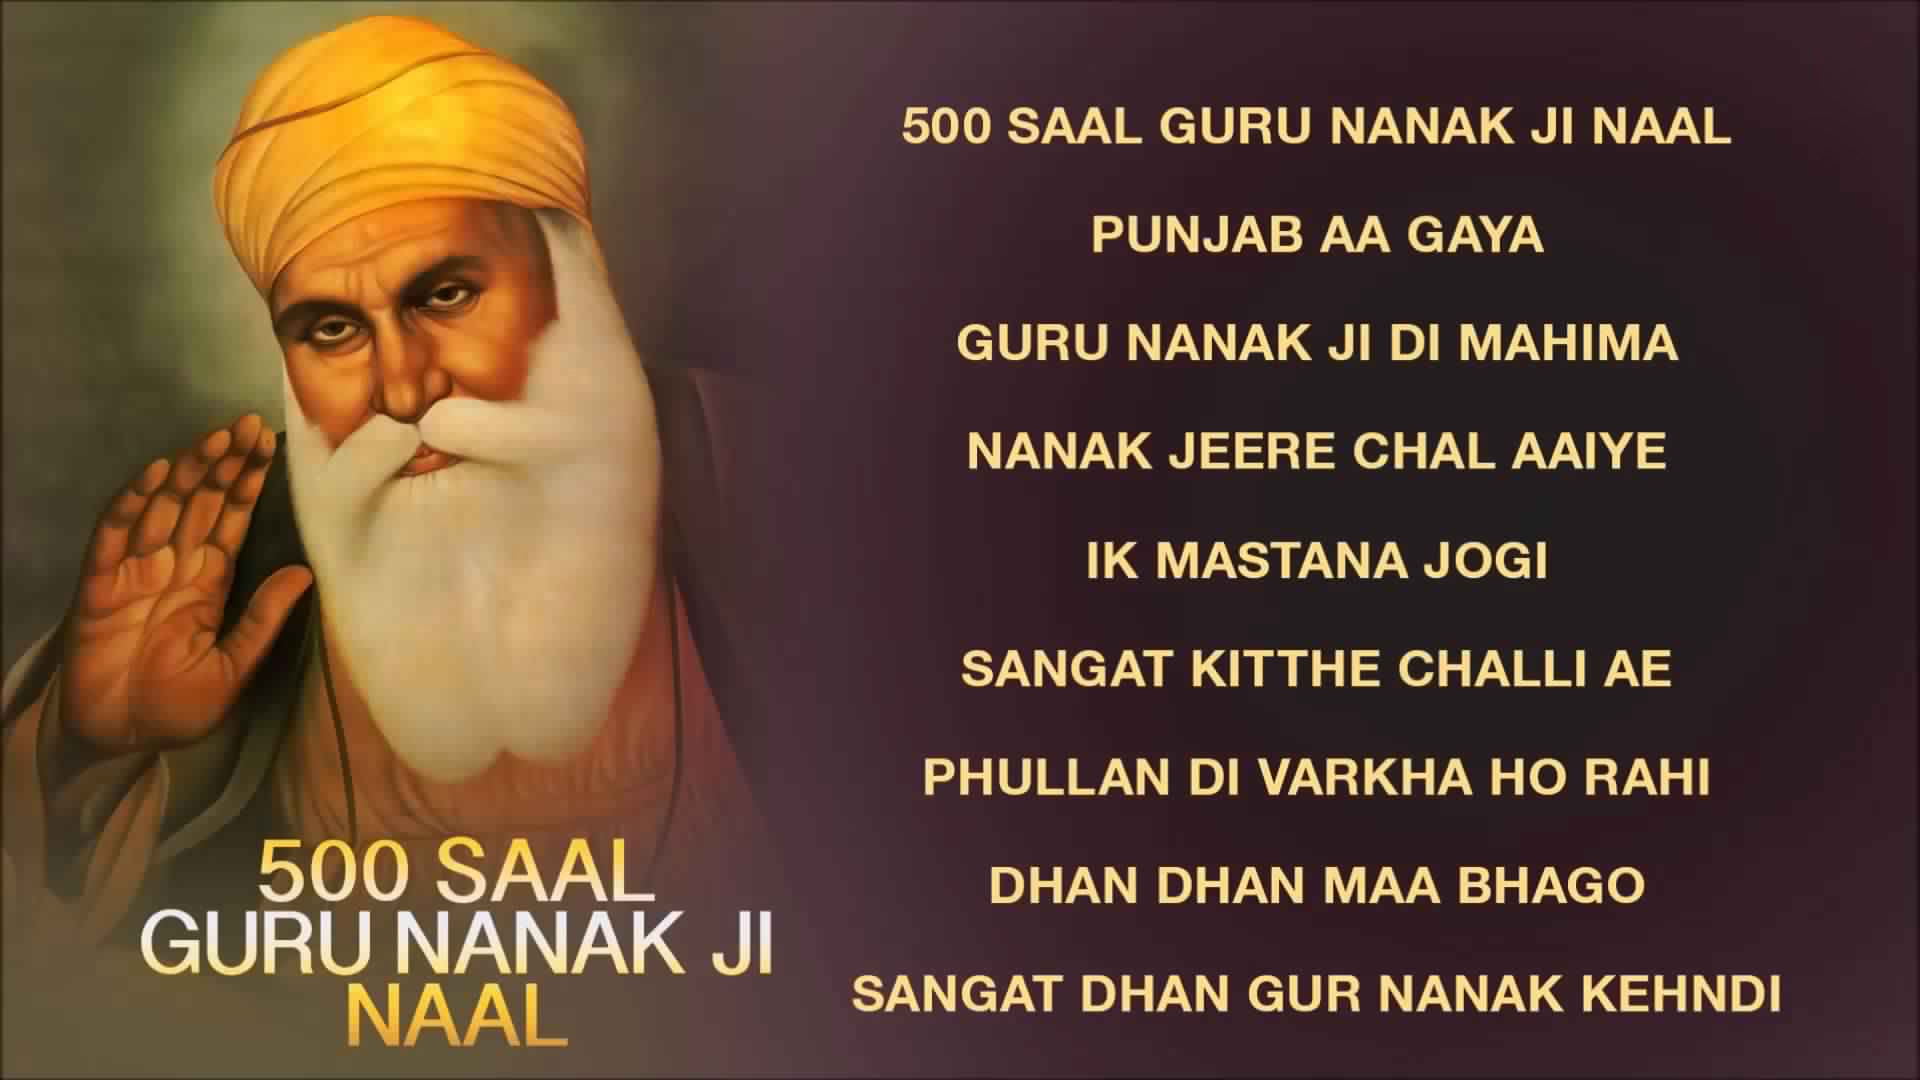 Inspirational Quotes From Guru Nanak Ji In Punjabi